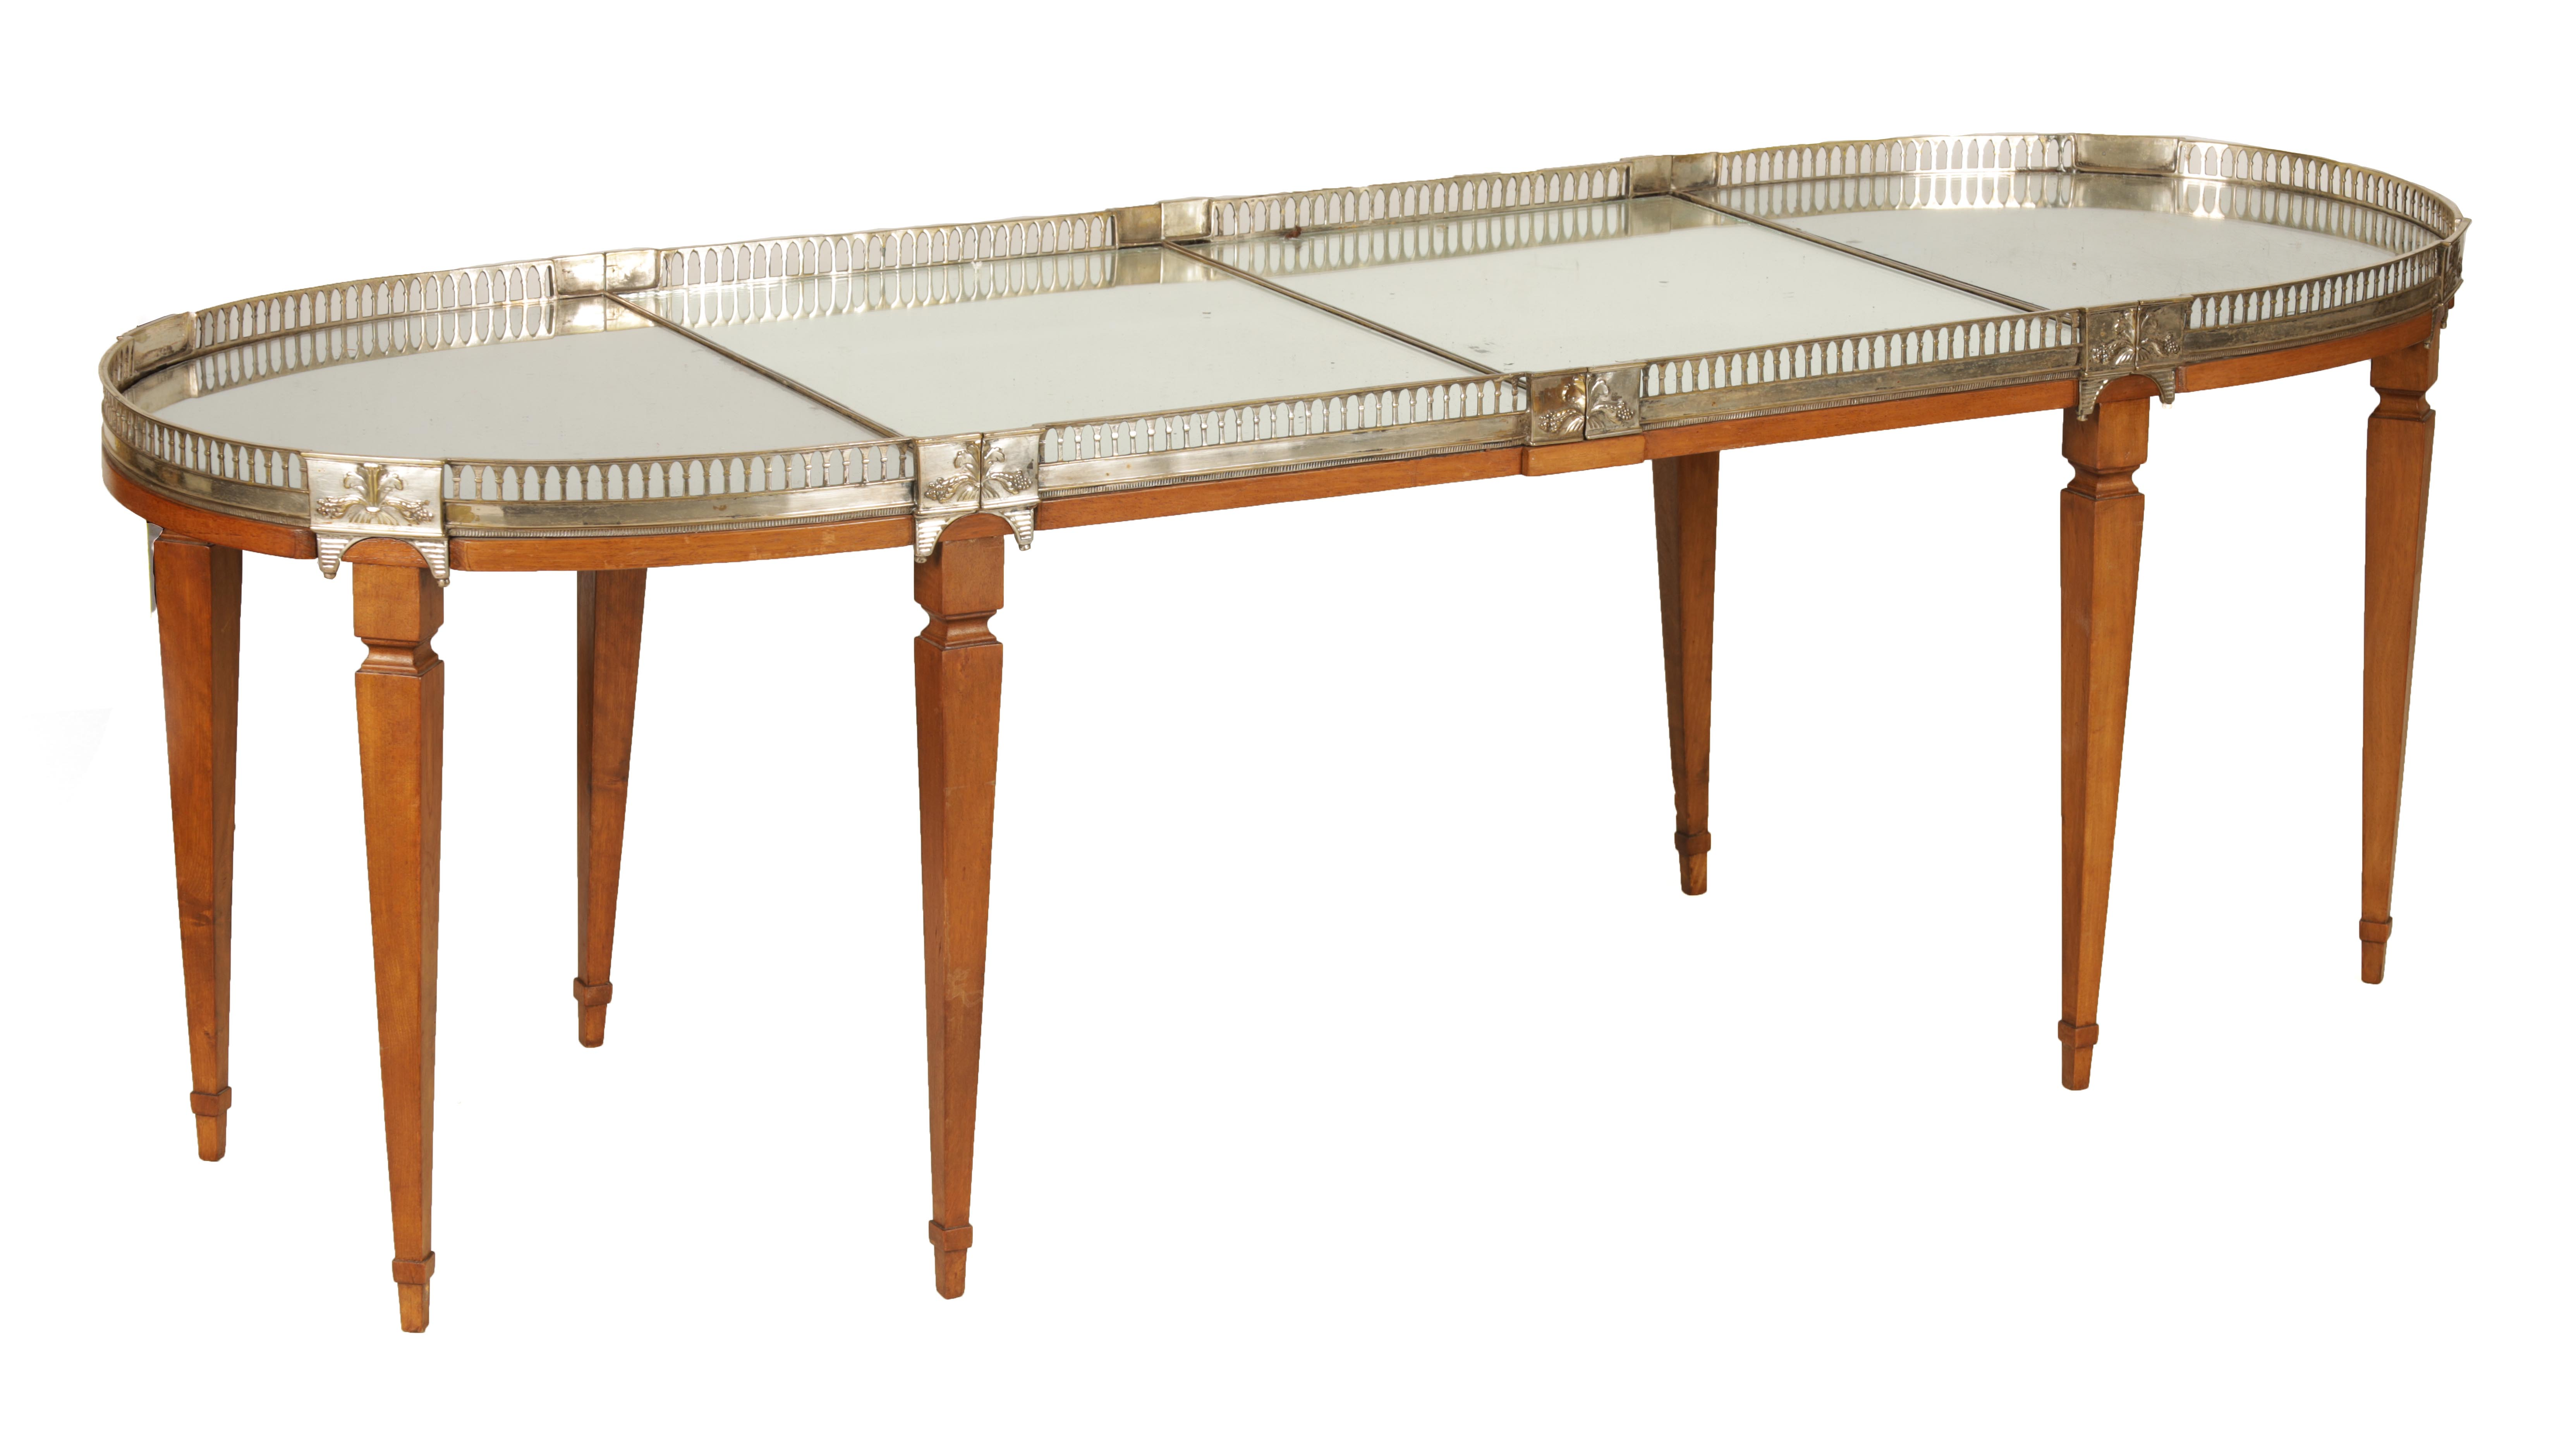 A 19TH CENTURY SILVERED BRONZE TABLE CENTREPIECE FOUR SECTIONAL TRAY with pierced gallery and